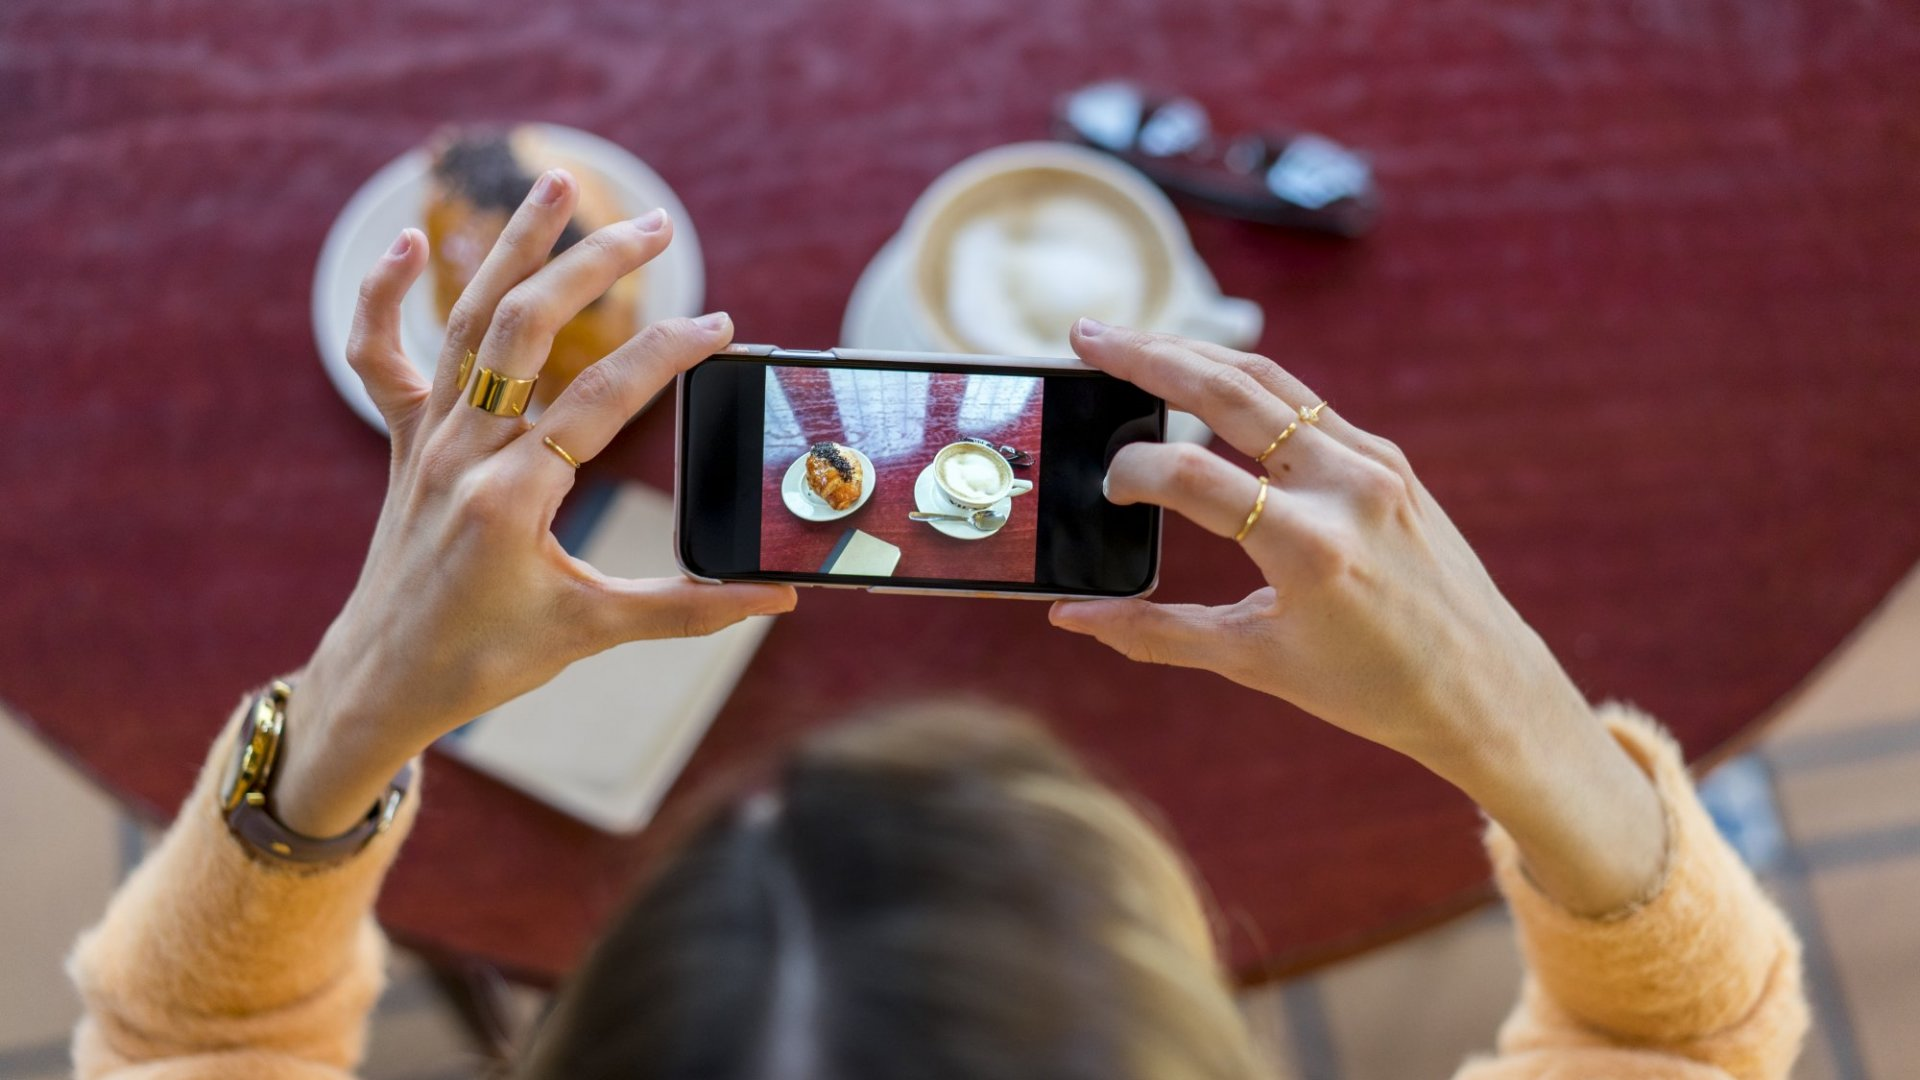 Influencer marketing is expected to hit $10 billion dollars by 2020. Here's how to harness this powerful marketing idea.